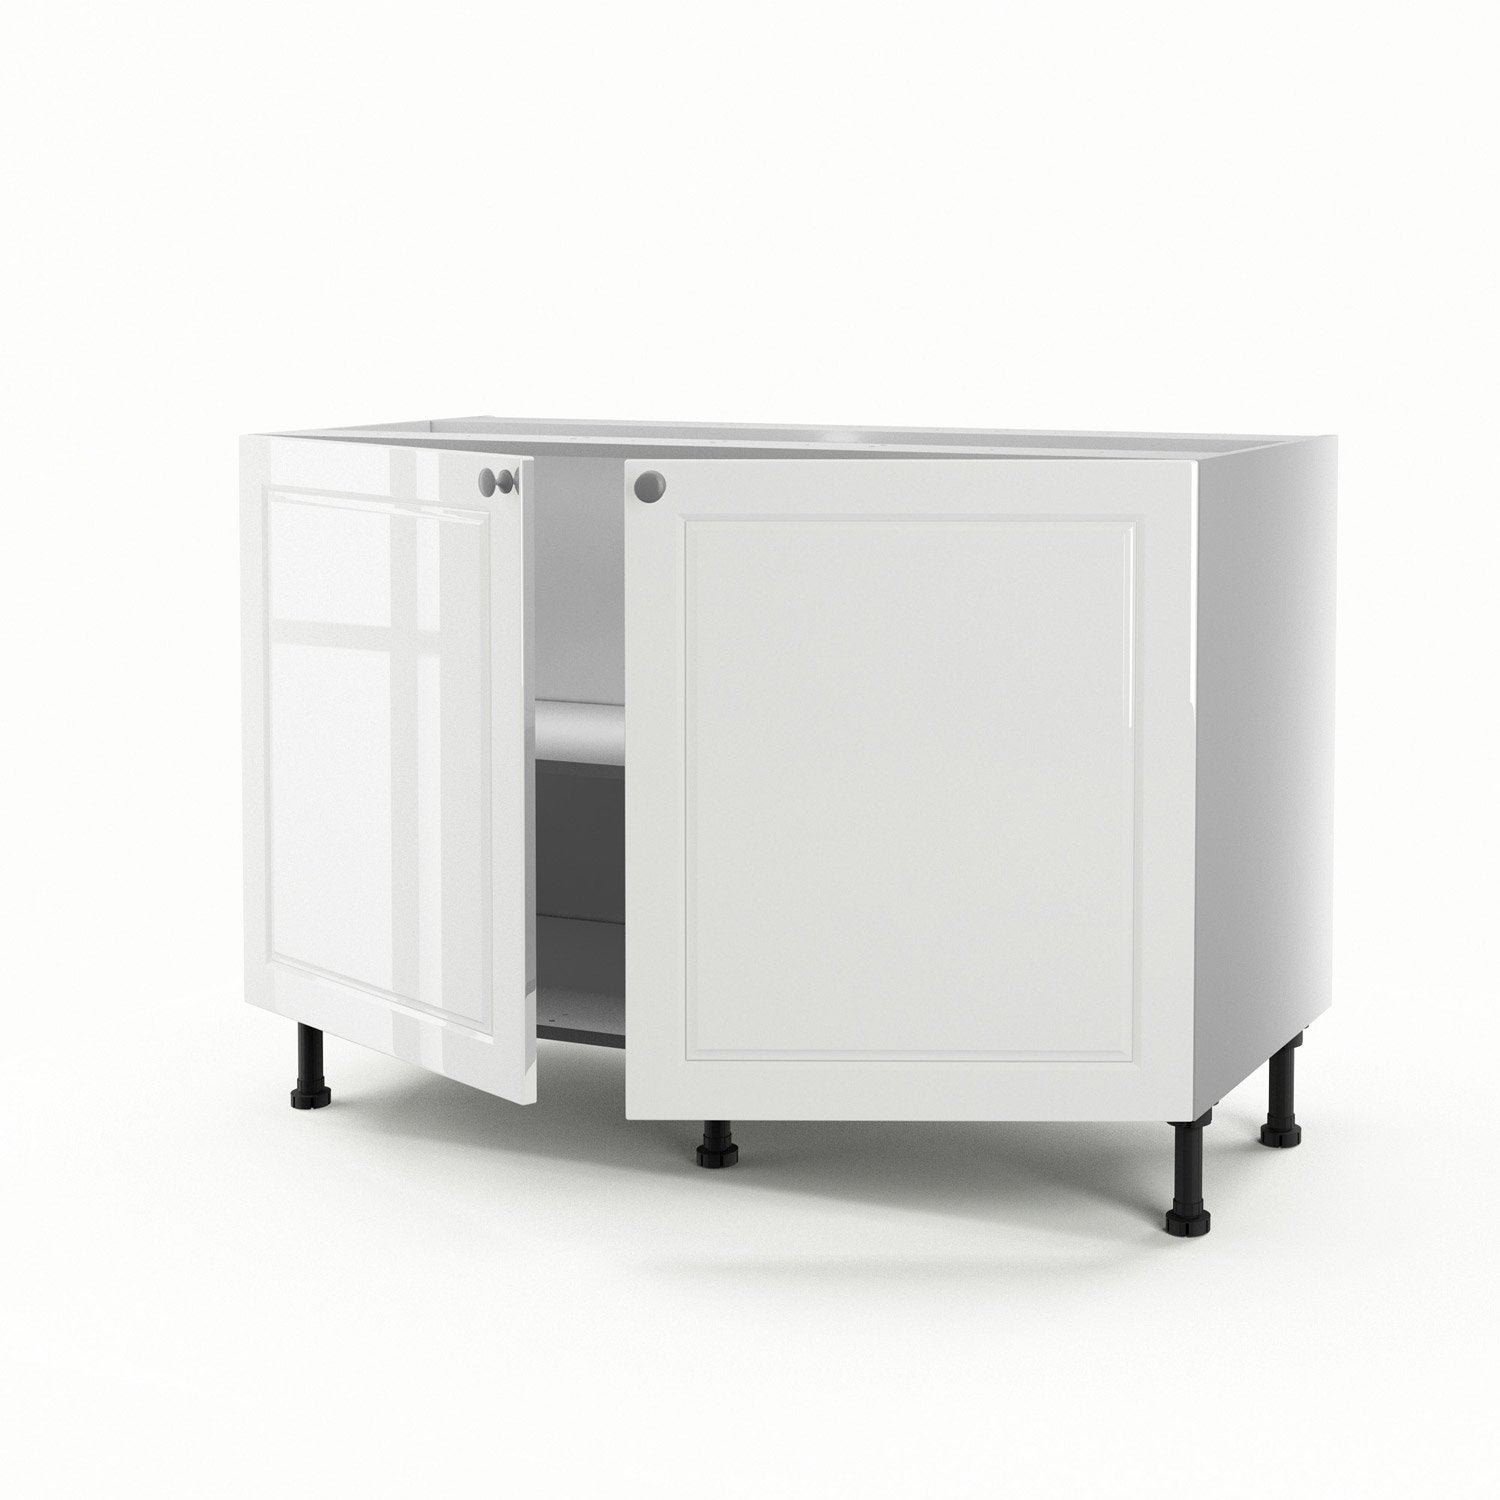 meuble de cuisine sous vier blanc 2 portes chelsea h70xl120xp56 cm leroy merlin. Black Bedroom Furniture Sets. Home Design Ideas